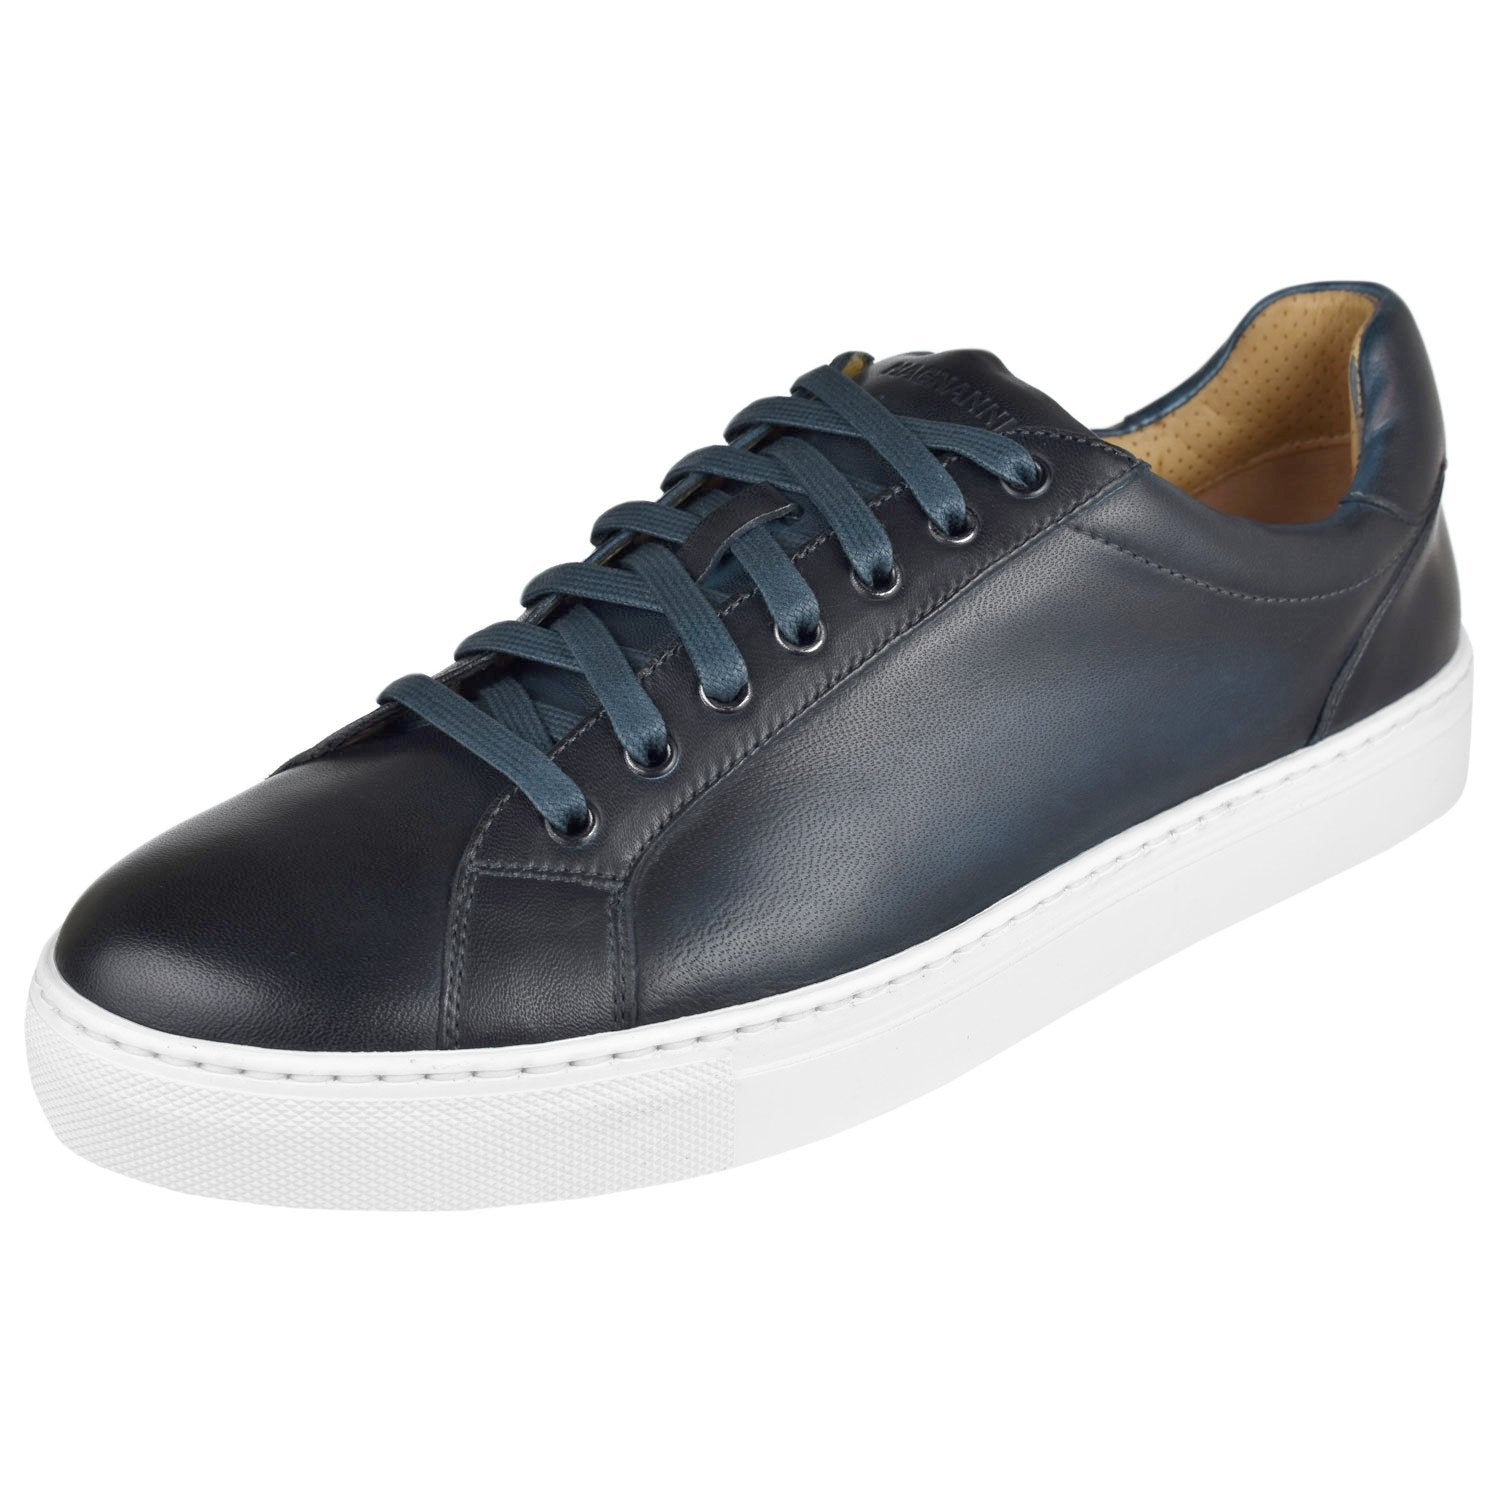 Men's Huston Cup Sneaker - Oak Hall